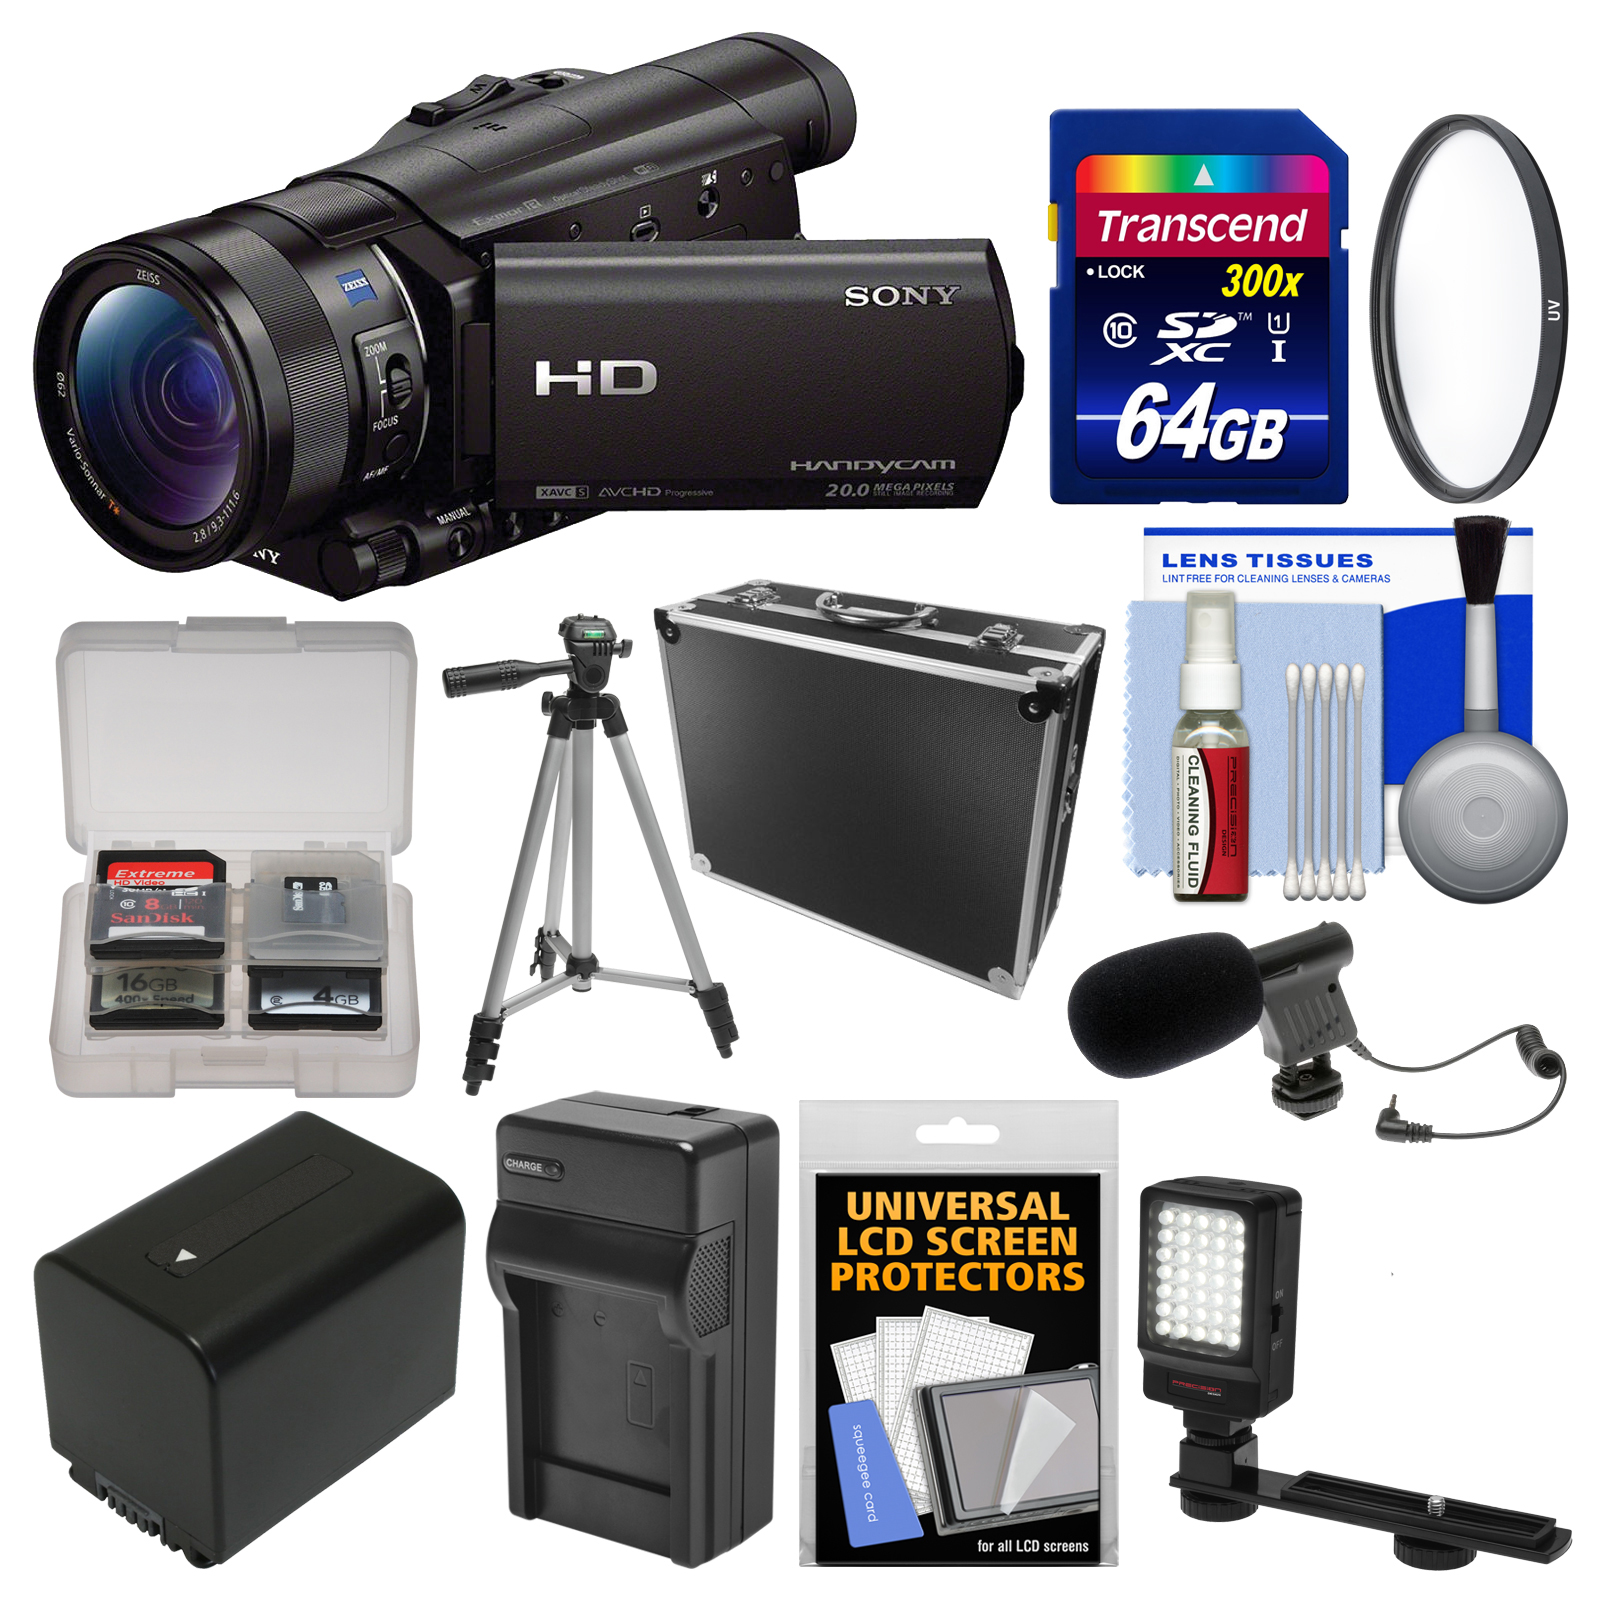 Sony Handycam HDR-CX900 Wi-Fi HD Video Camera Camcorder w...